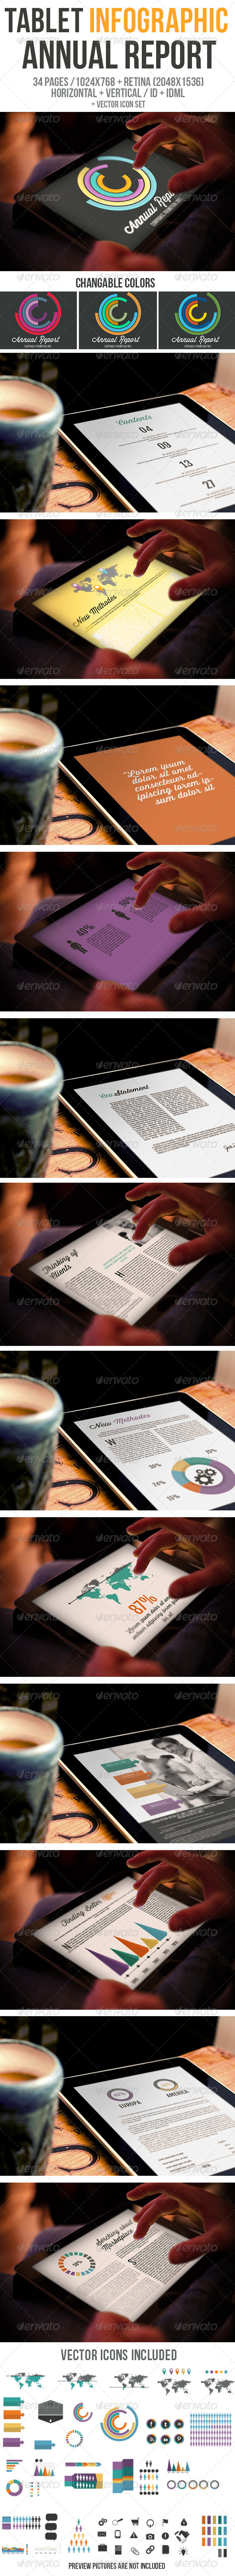 GraphicRiver Tablet Infographic Annual Report 6328878